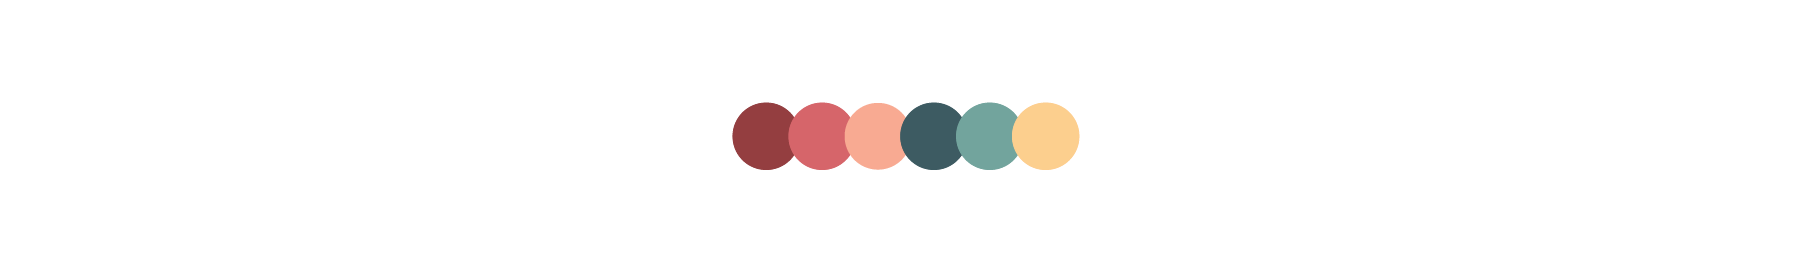 Swatch+Divider-01.png